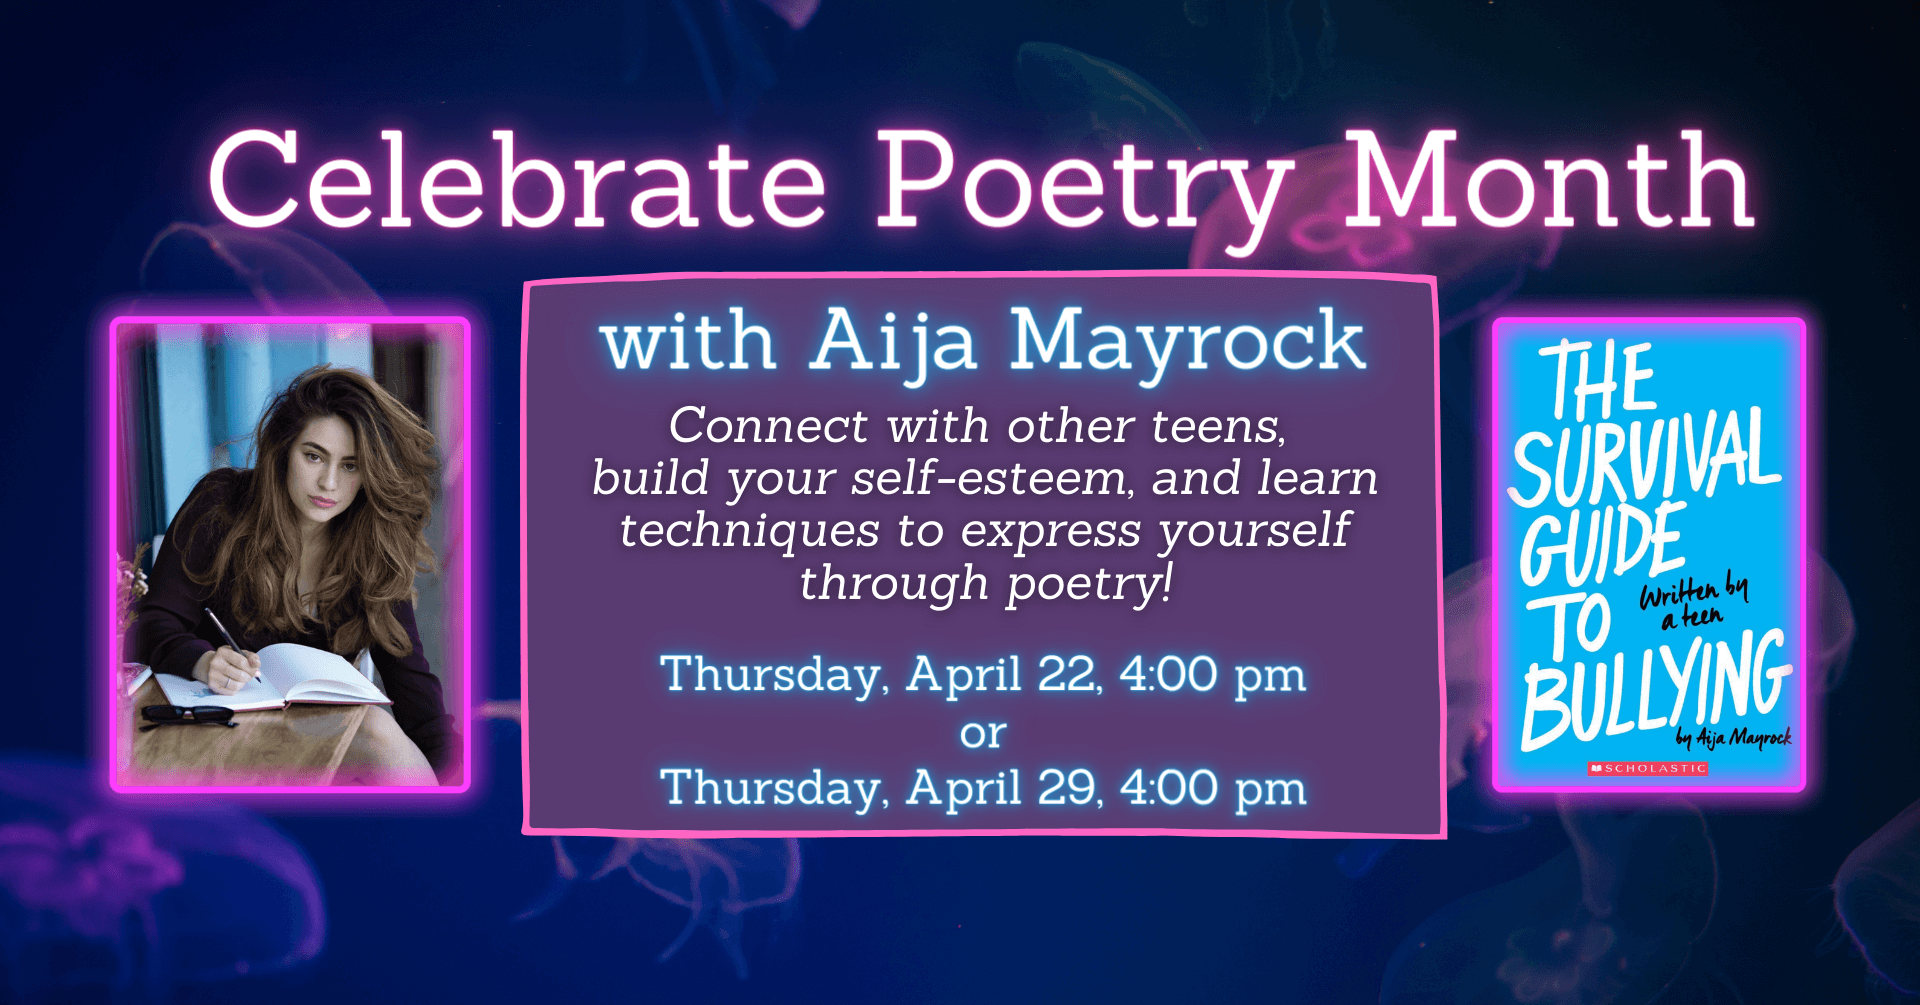 Celebrate Poetry Month With Aija Mayrock